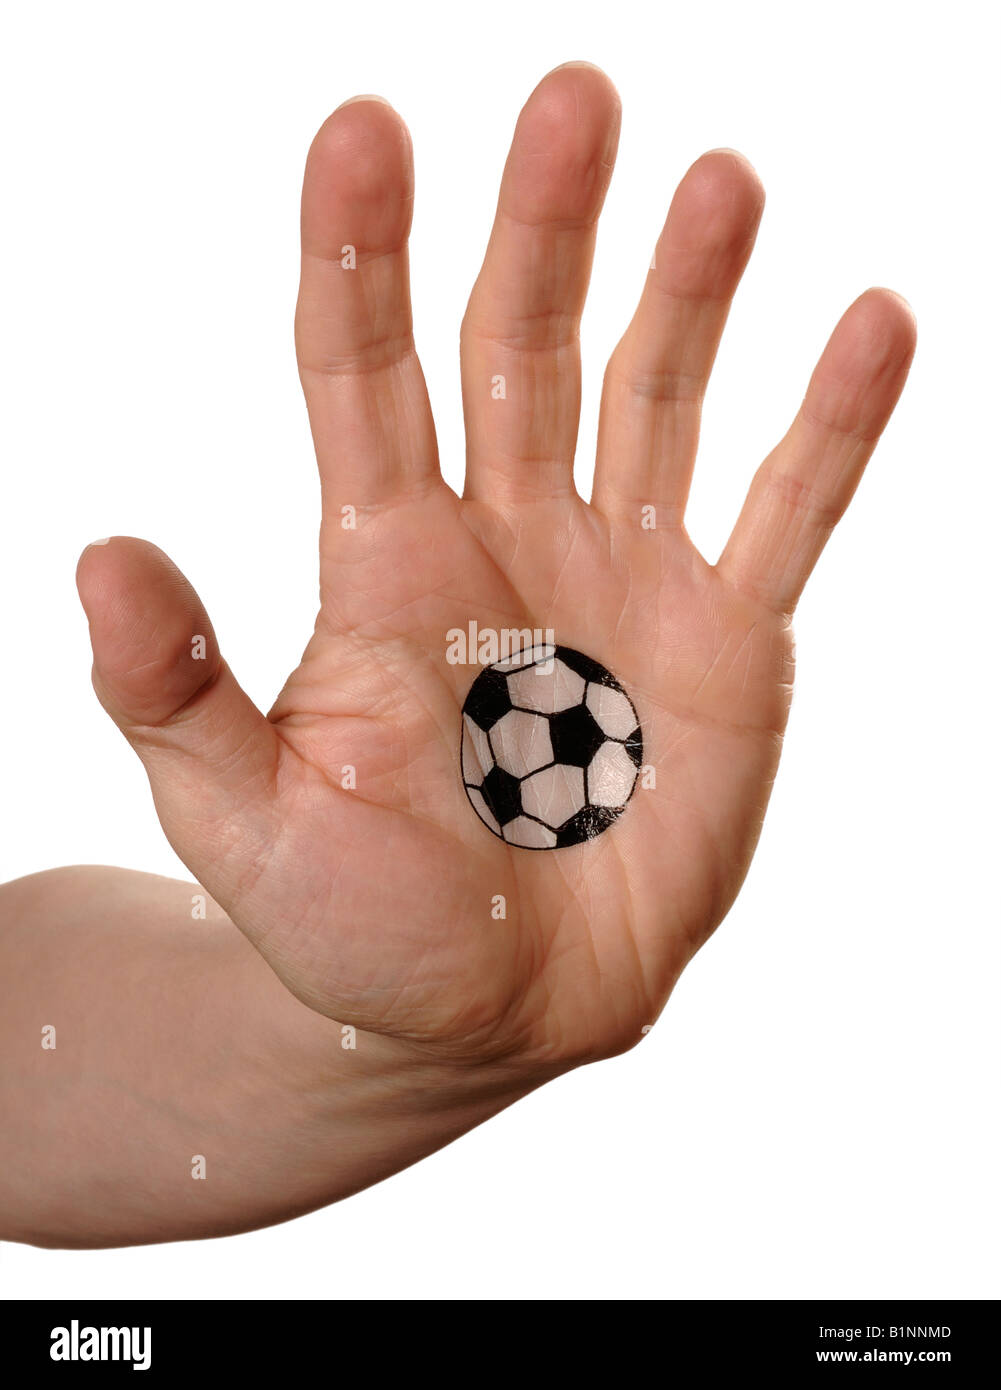 Mans hand with football on palm - Stock Image